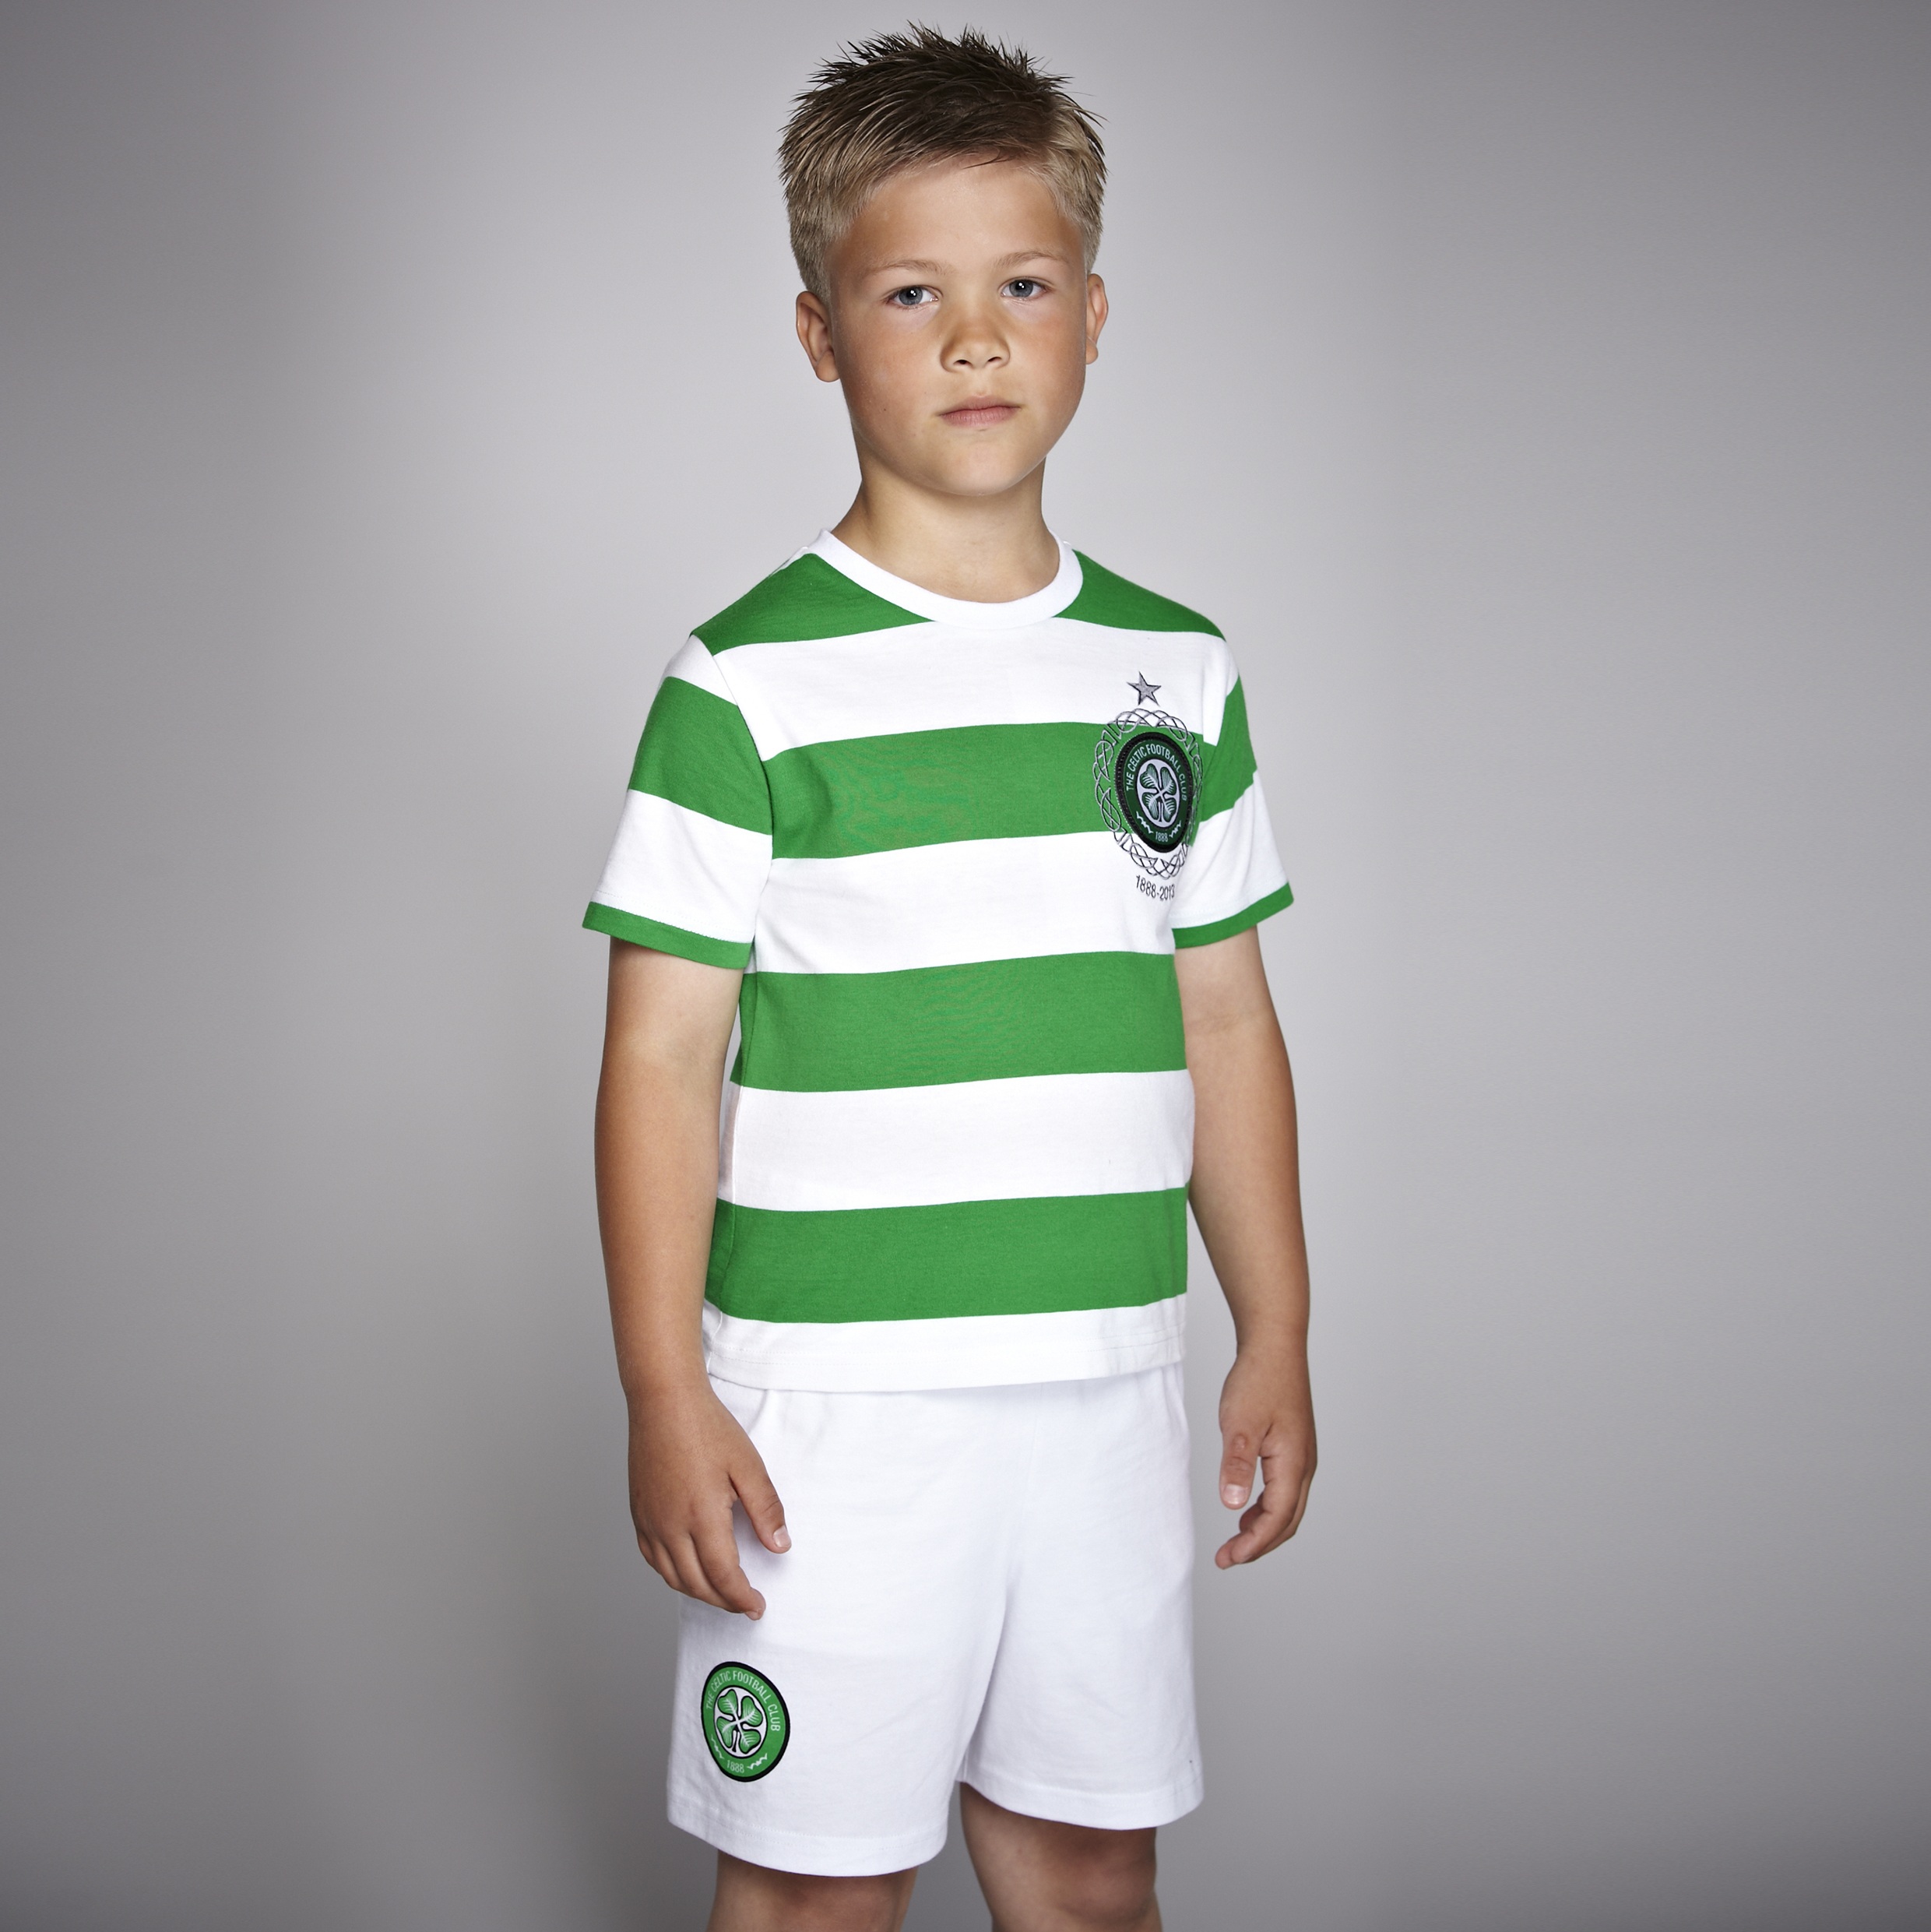 Celtic 125th Year Kit Pyjamas - Green/White - Boys